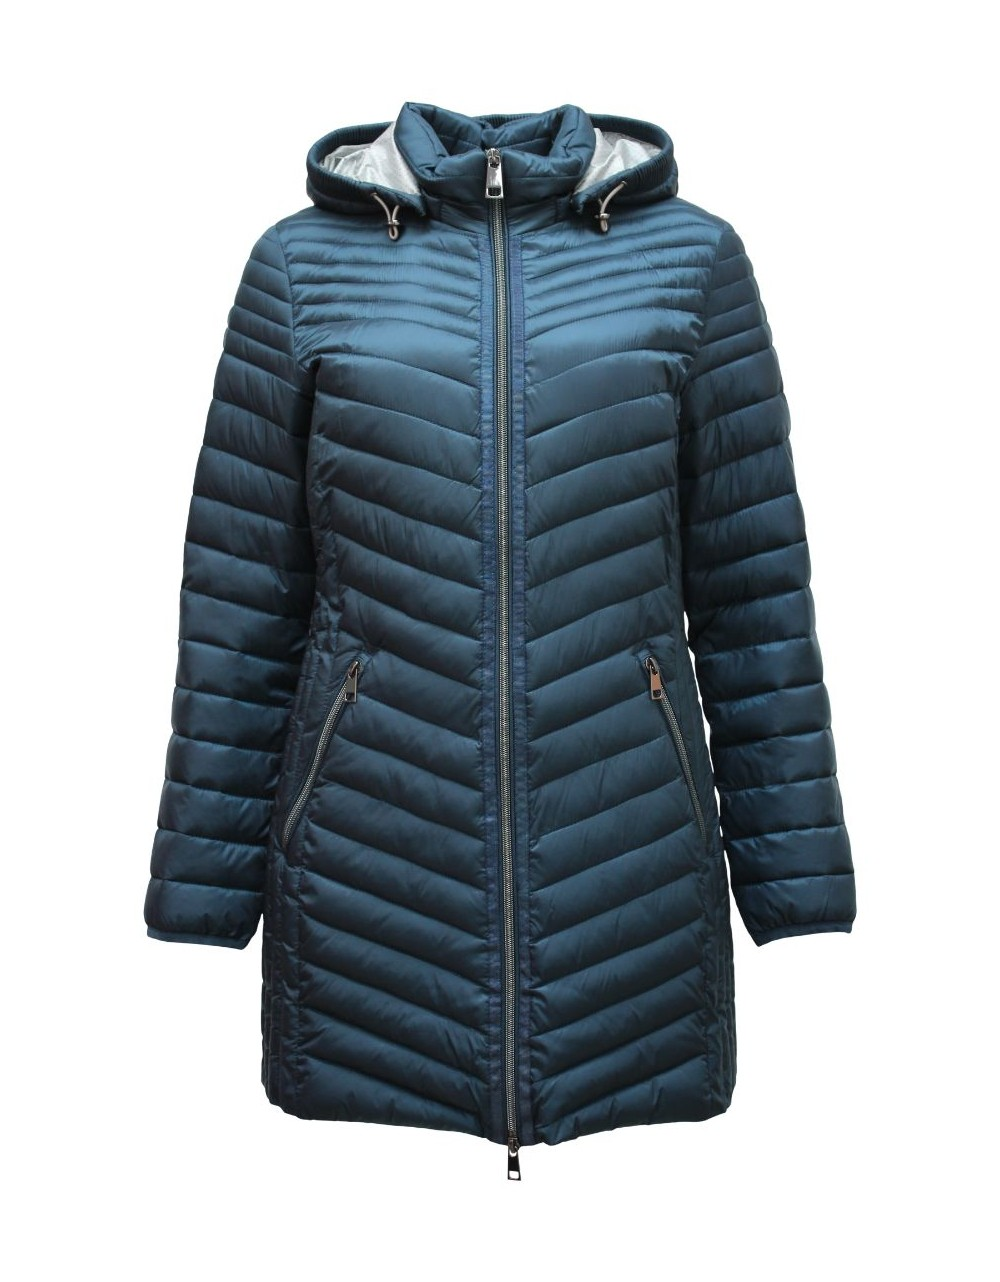 Lebek Quilted Jacket Optic Down|Barbara Lebek Outerwear|Irish Handcrafts 1